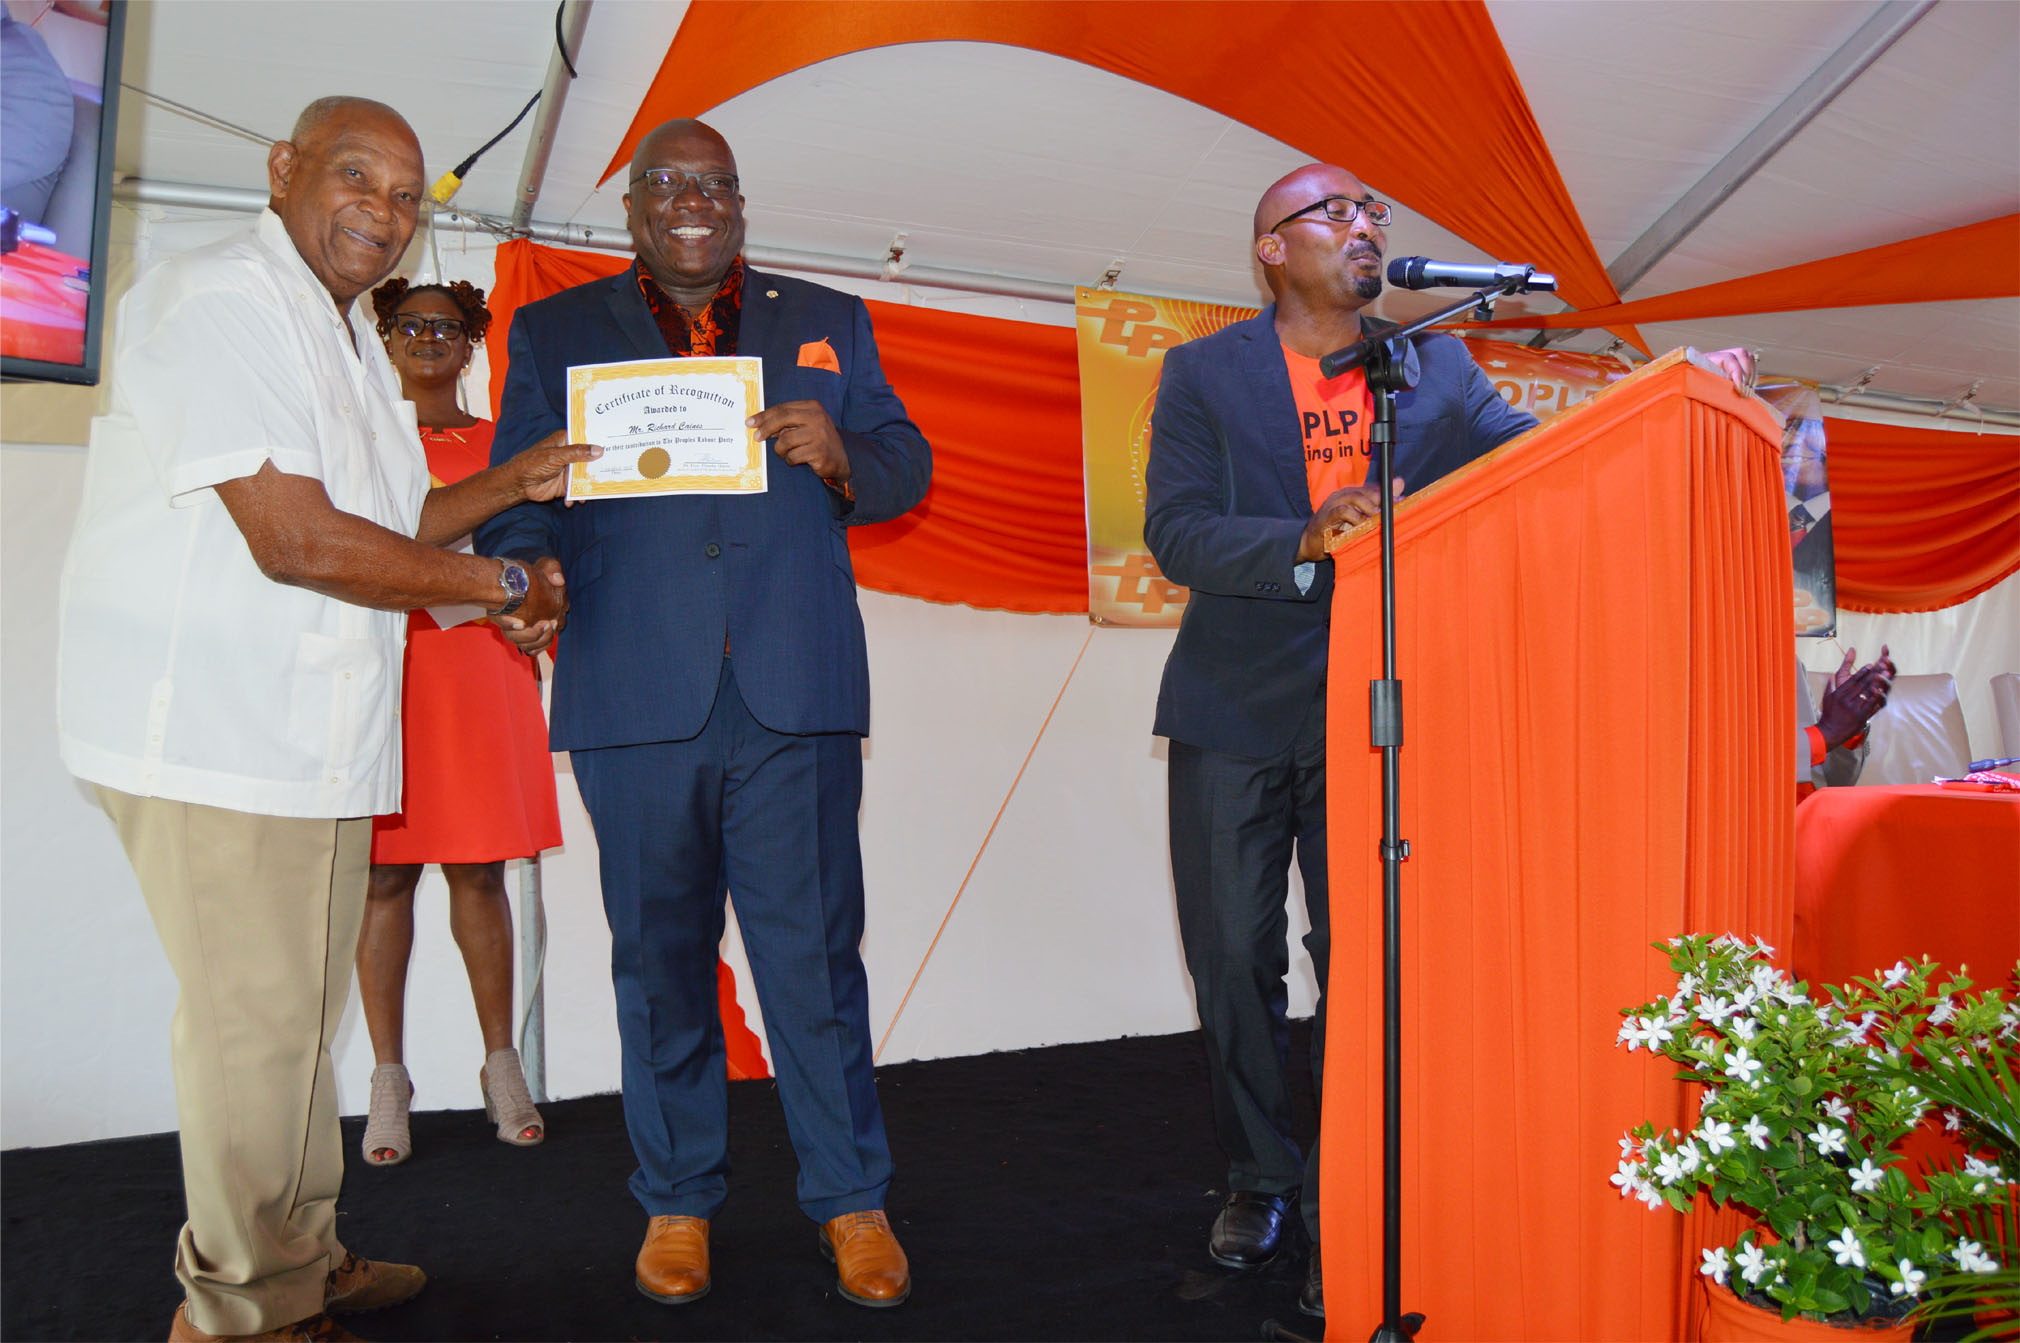 PLP Recognition and Awards 2